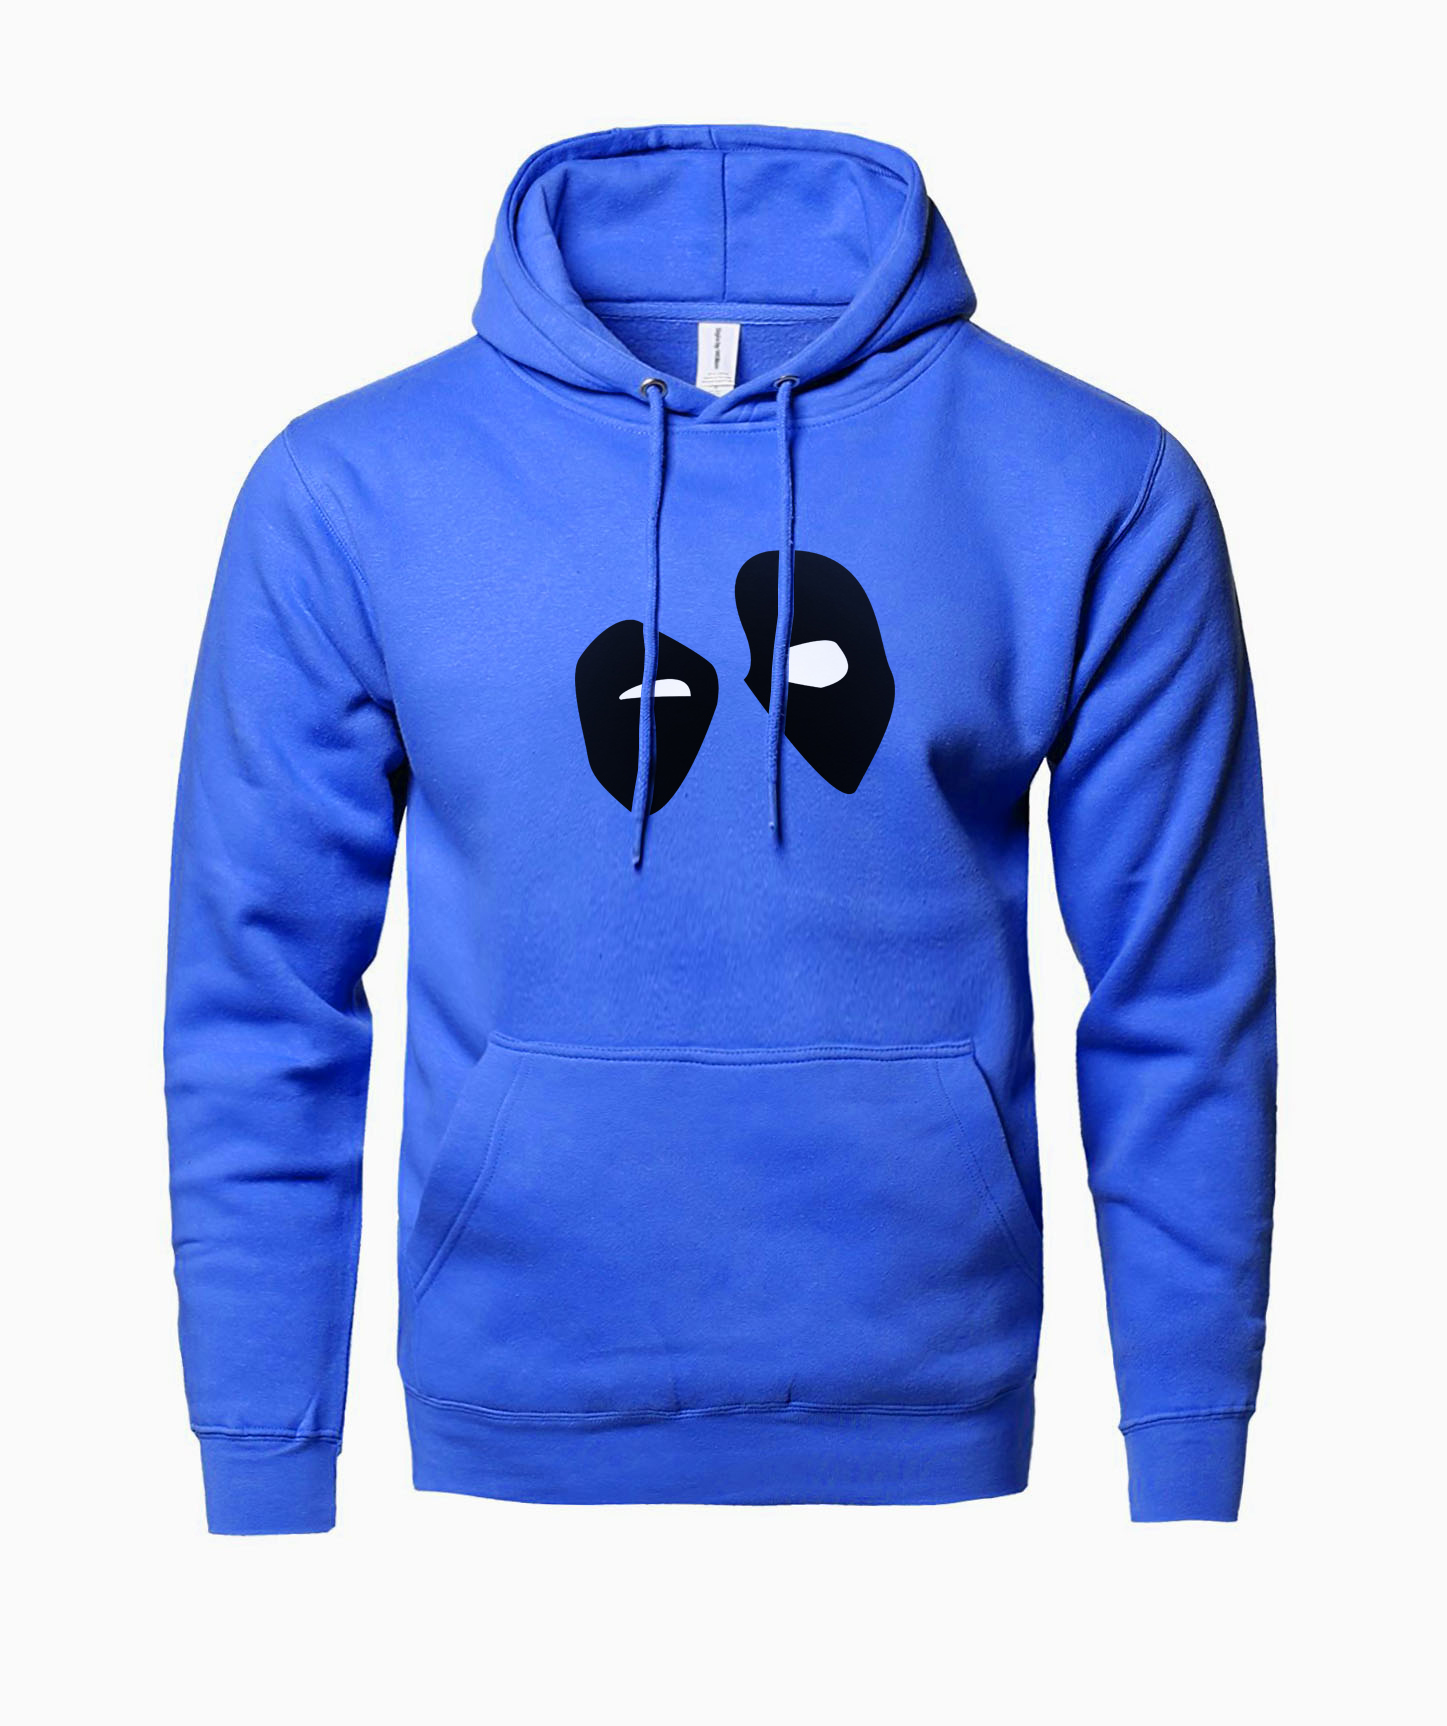 Hero Deadpool Fashion Hoody For Men Print 2019 Spring Winter Mens Hoodies Brand Streetwear Sweatshirt Harajuku Hoodie Sportsuit